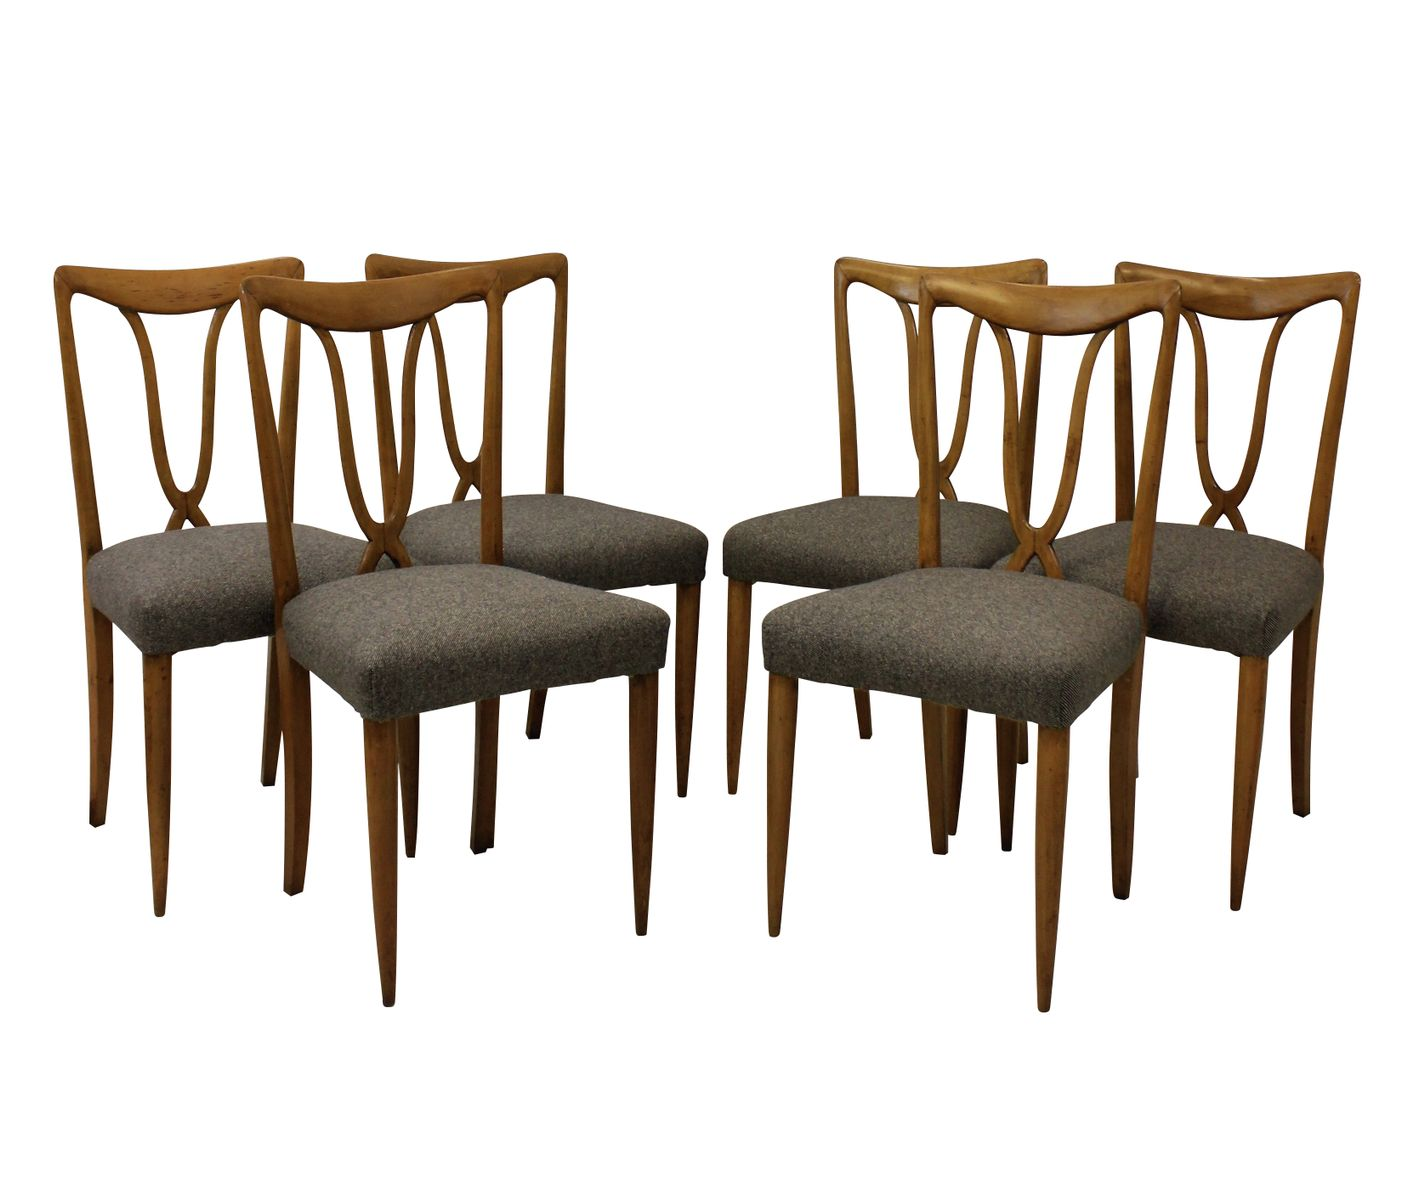 Italian Cherry Dining Chairs 1950s Set Of 6 For Sale At